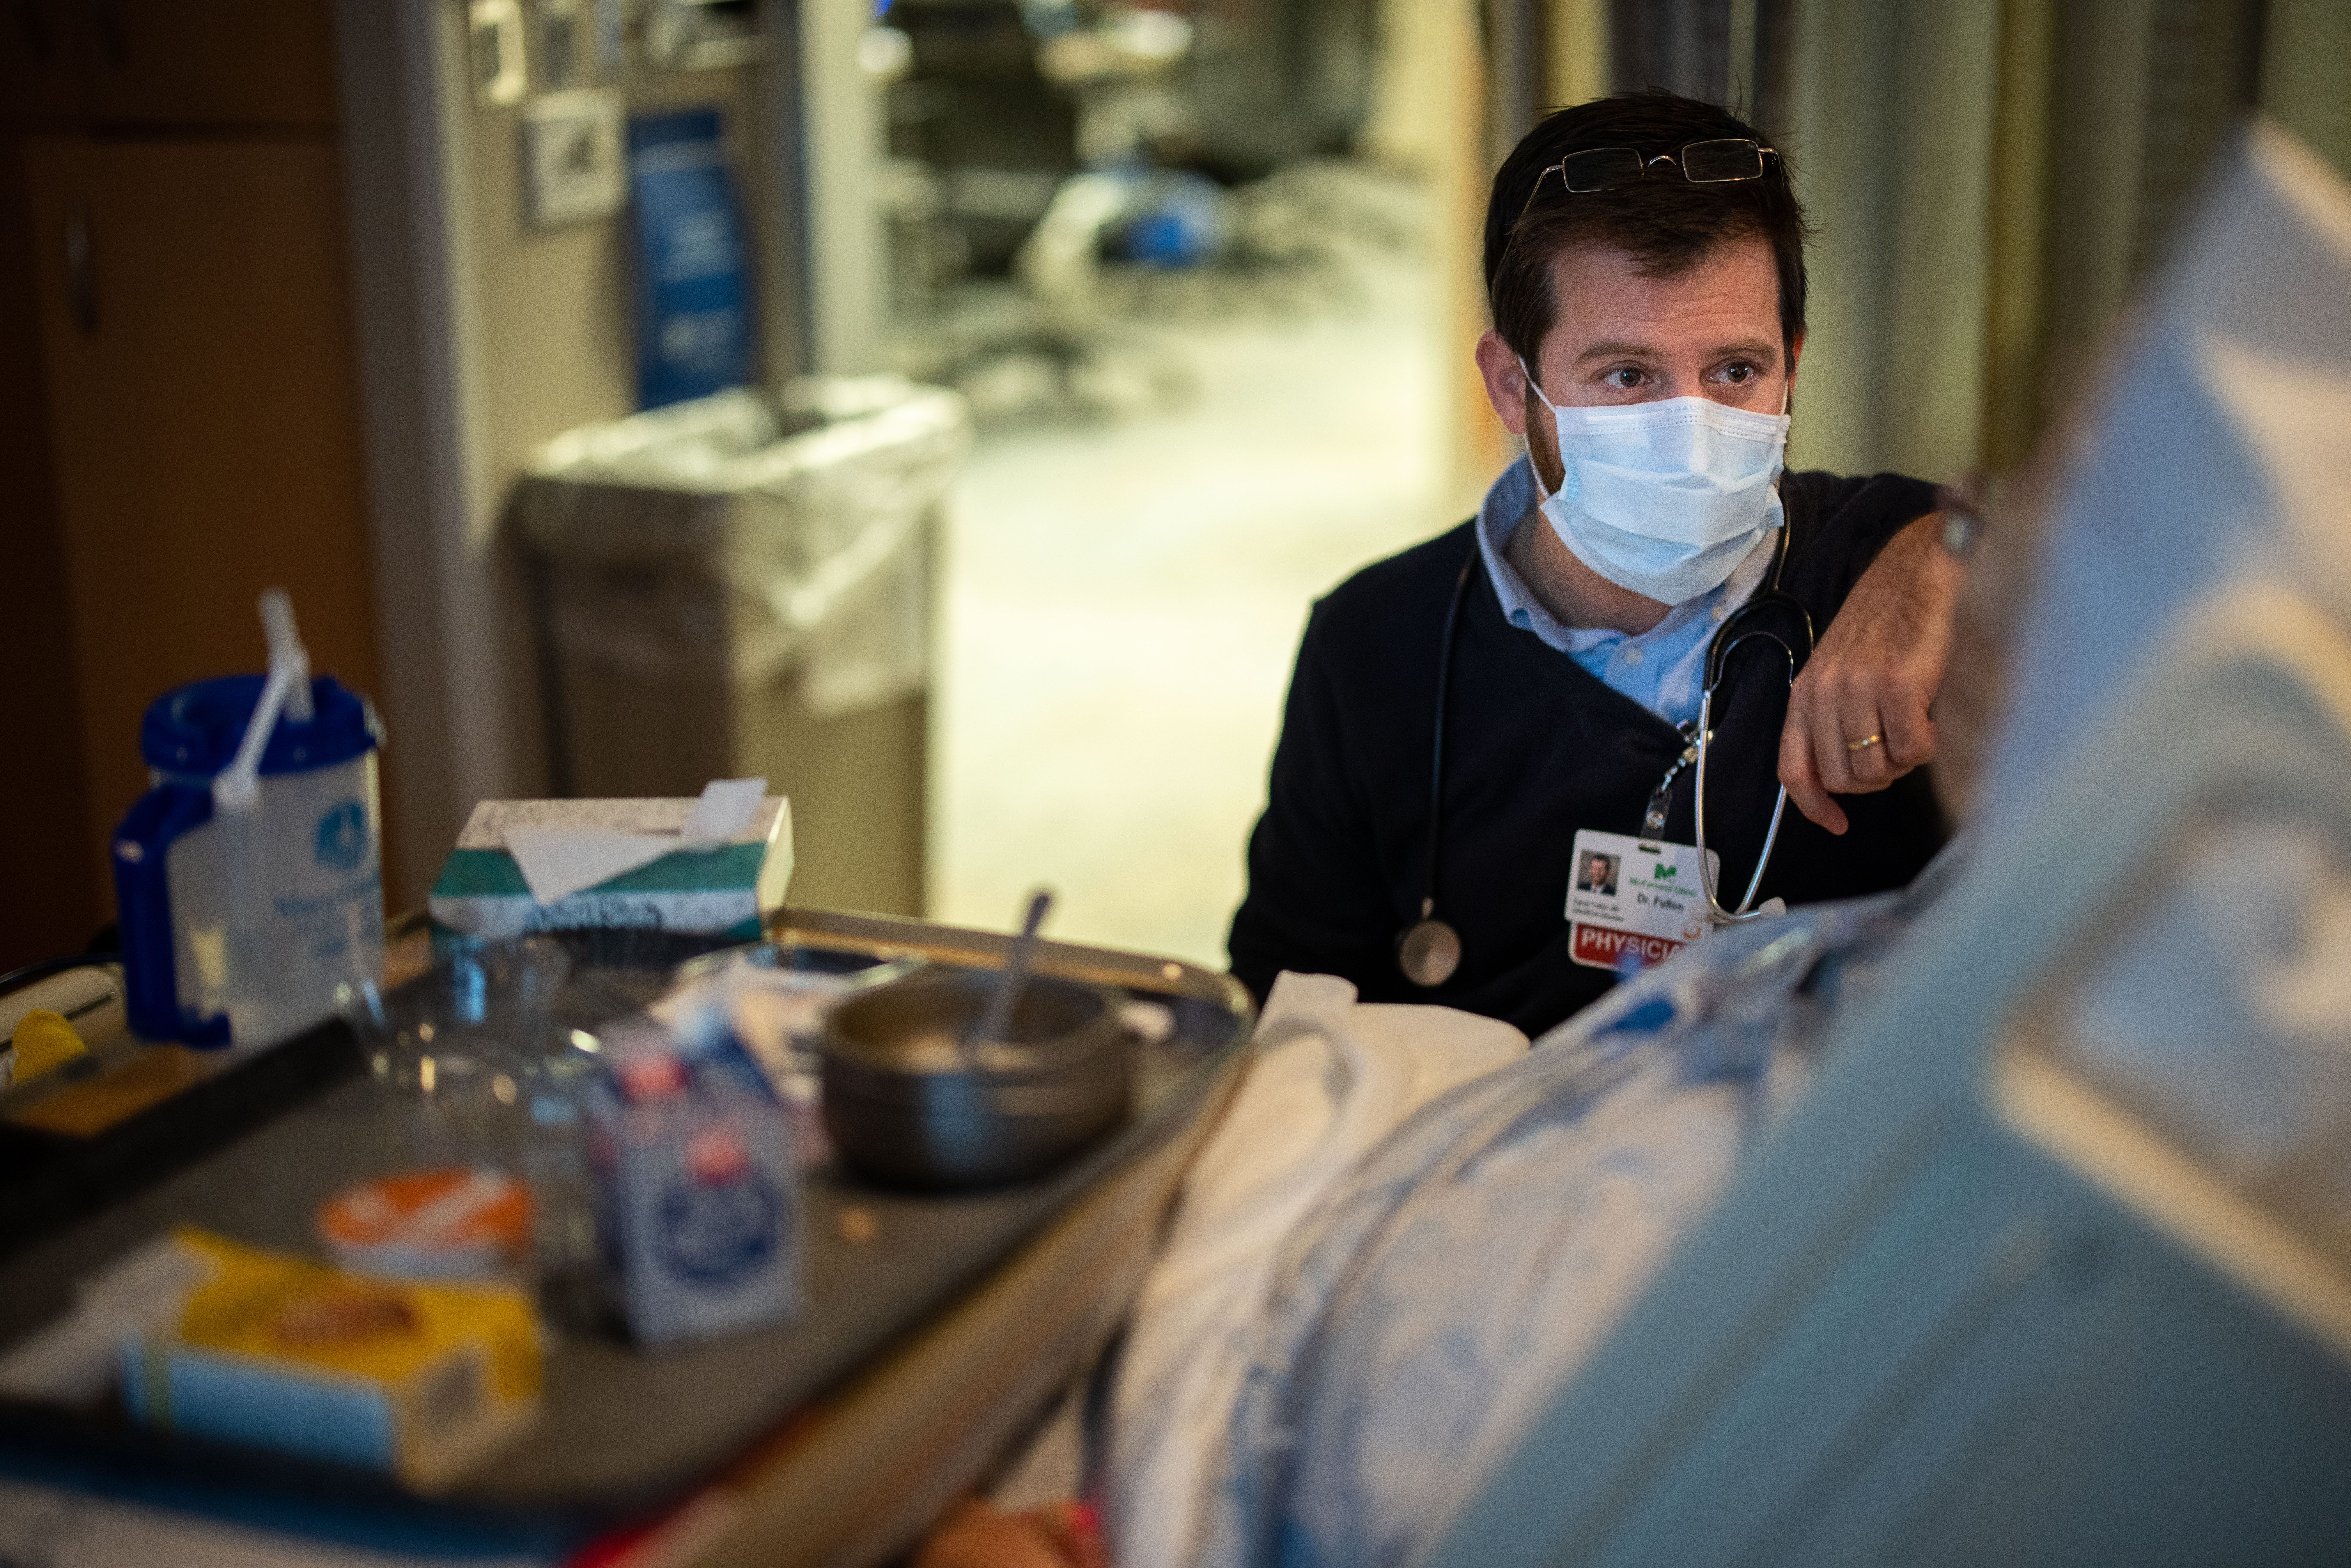 Infectious disease specialist Dr. Dan Fulton talks with a patient in the ICU at Mary Greeley Medical Center in Ames on Dec. 16.